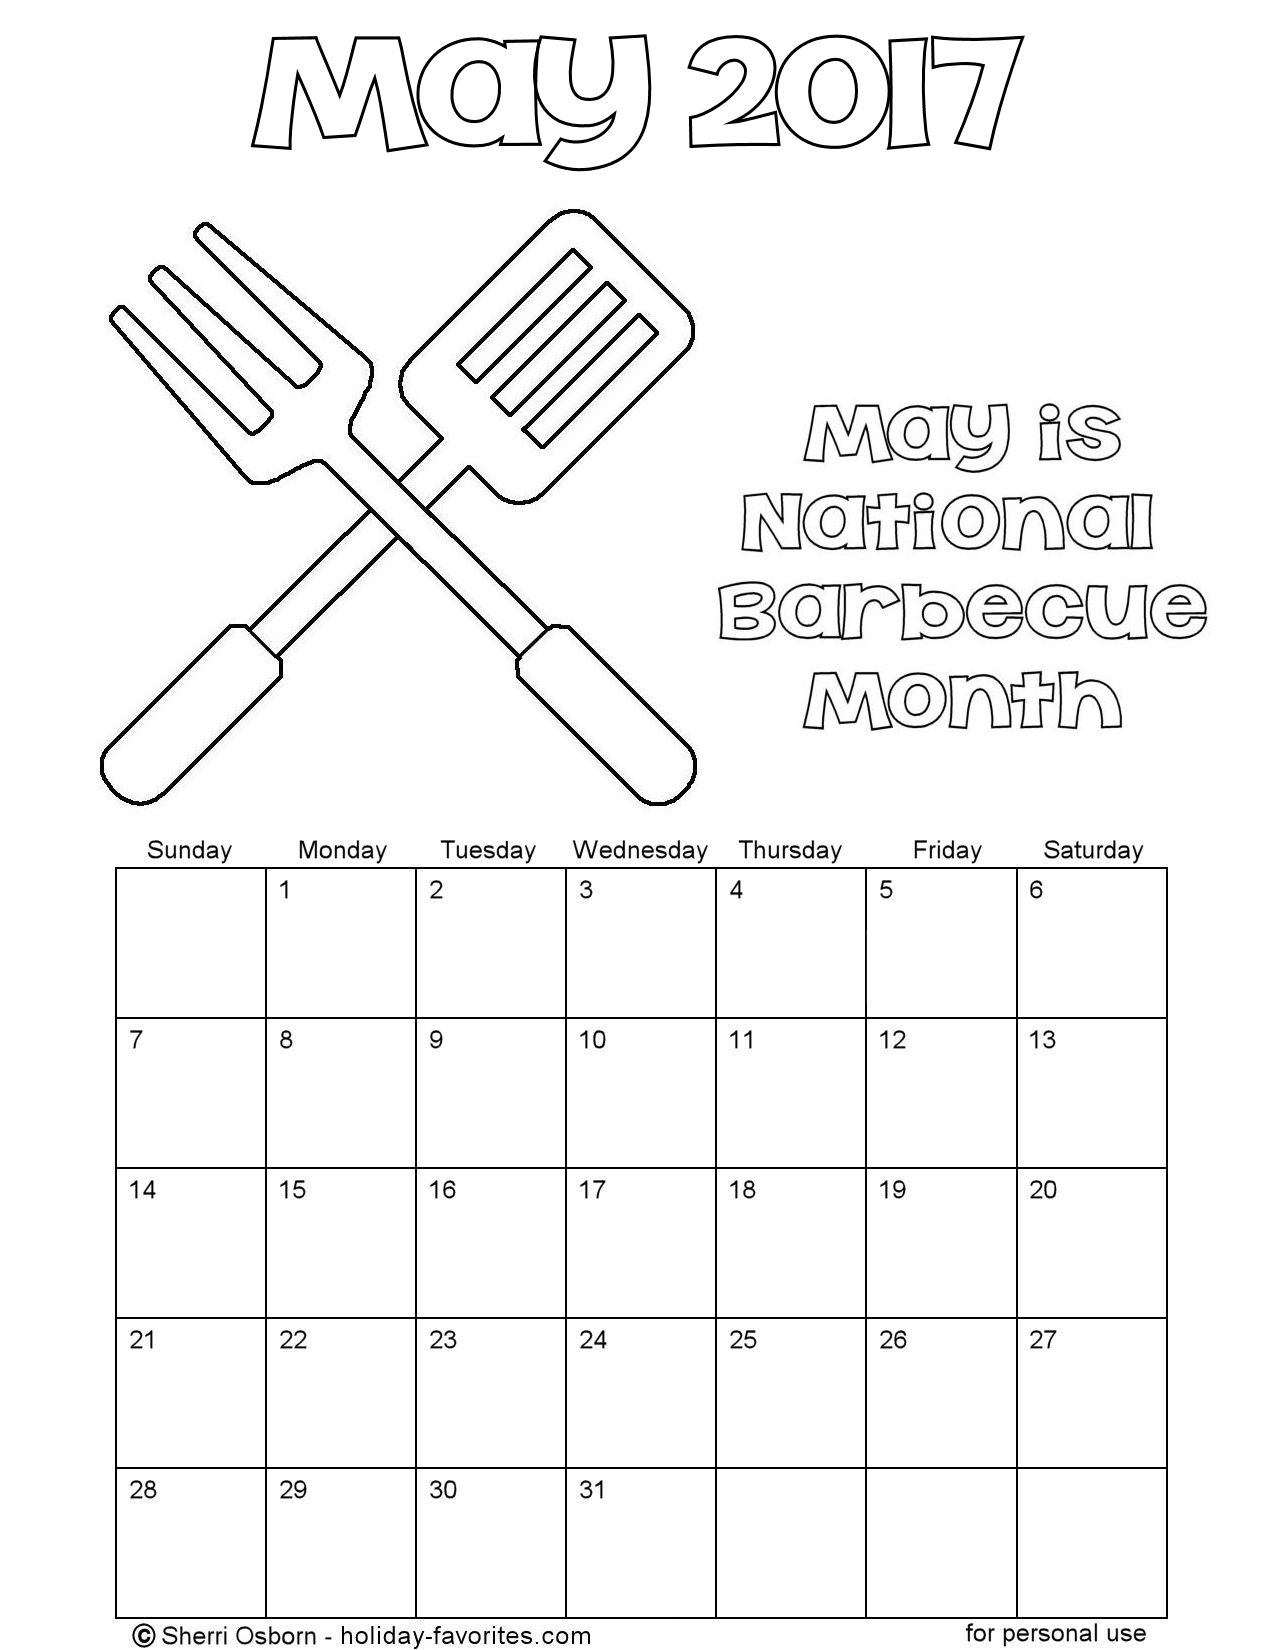 May 2017 Barbecue Calendar Coloring Page